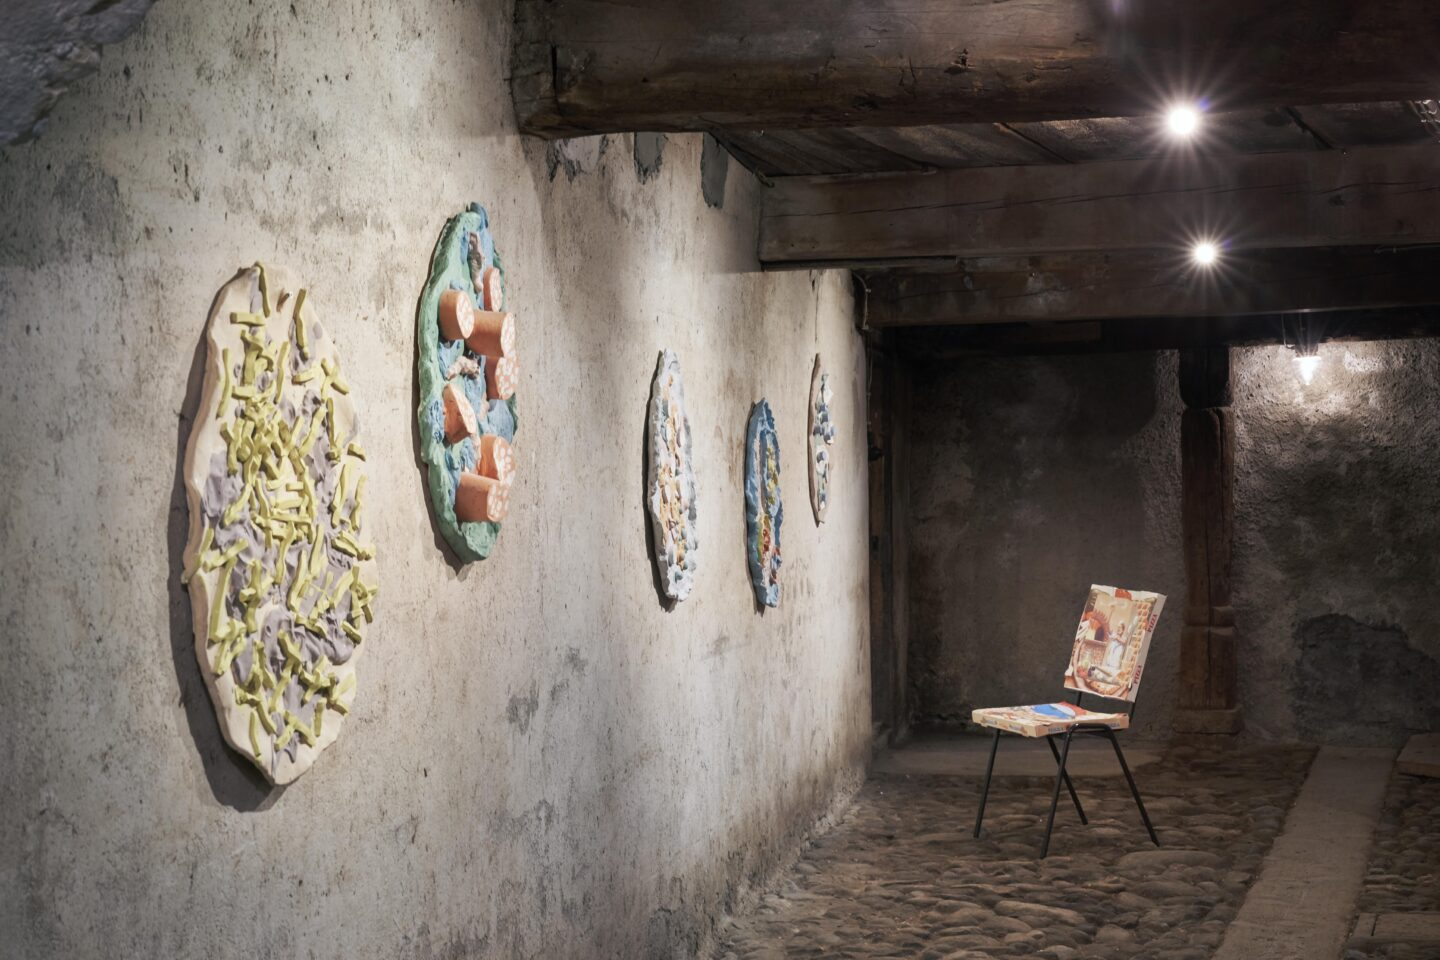 Exhibition View Bastien Aubry Soloshow «Pizzeria Stalletta» at Stalletta Madulain by Windhager von Kaenel / Photo: Franz Rindlisbacher / Courtesy: the artist and Windhager von Kaenel